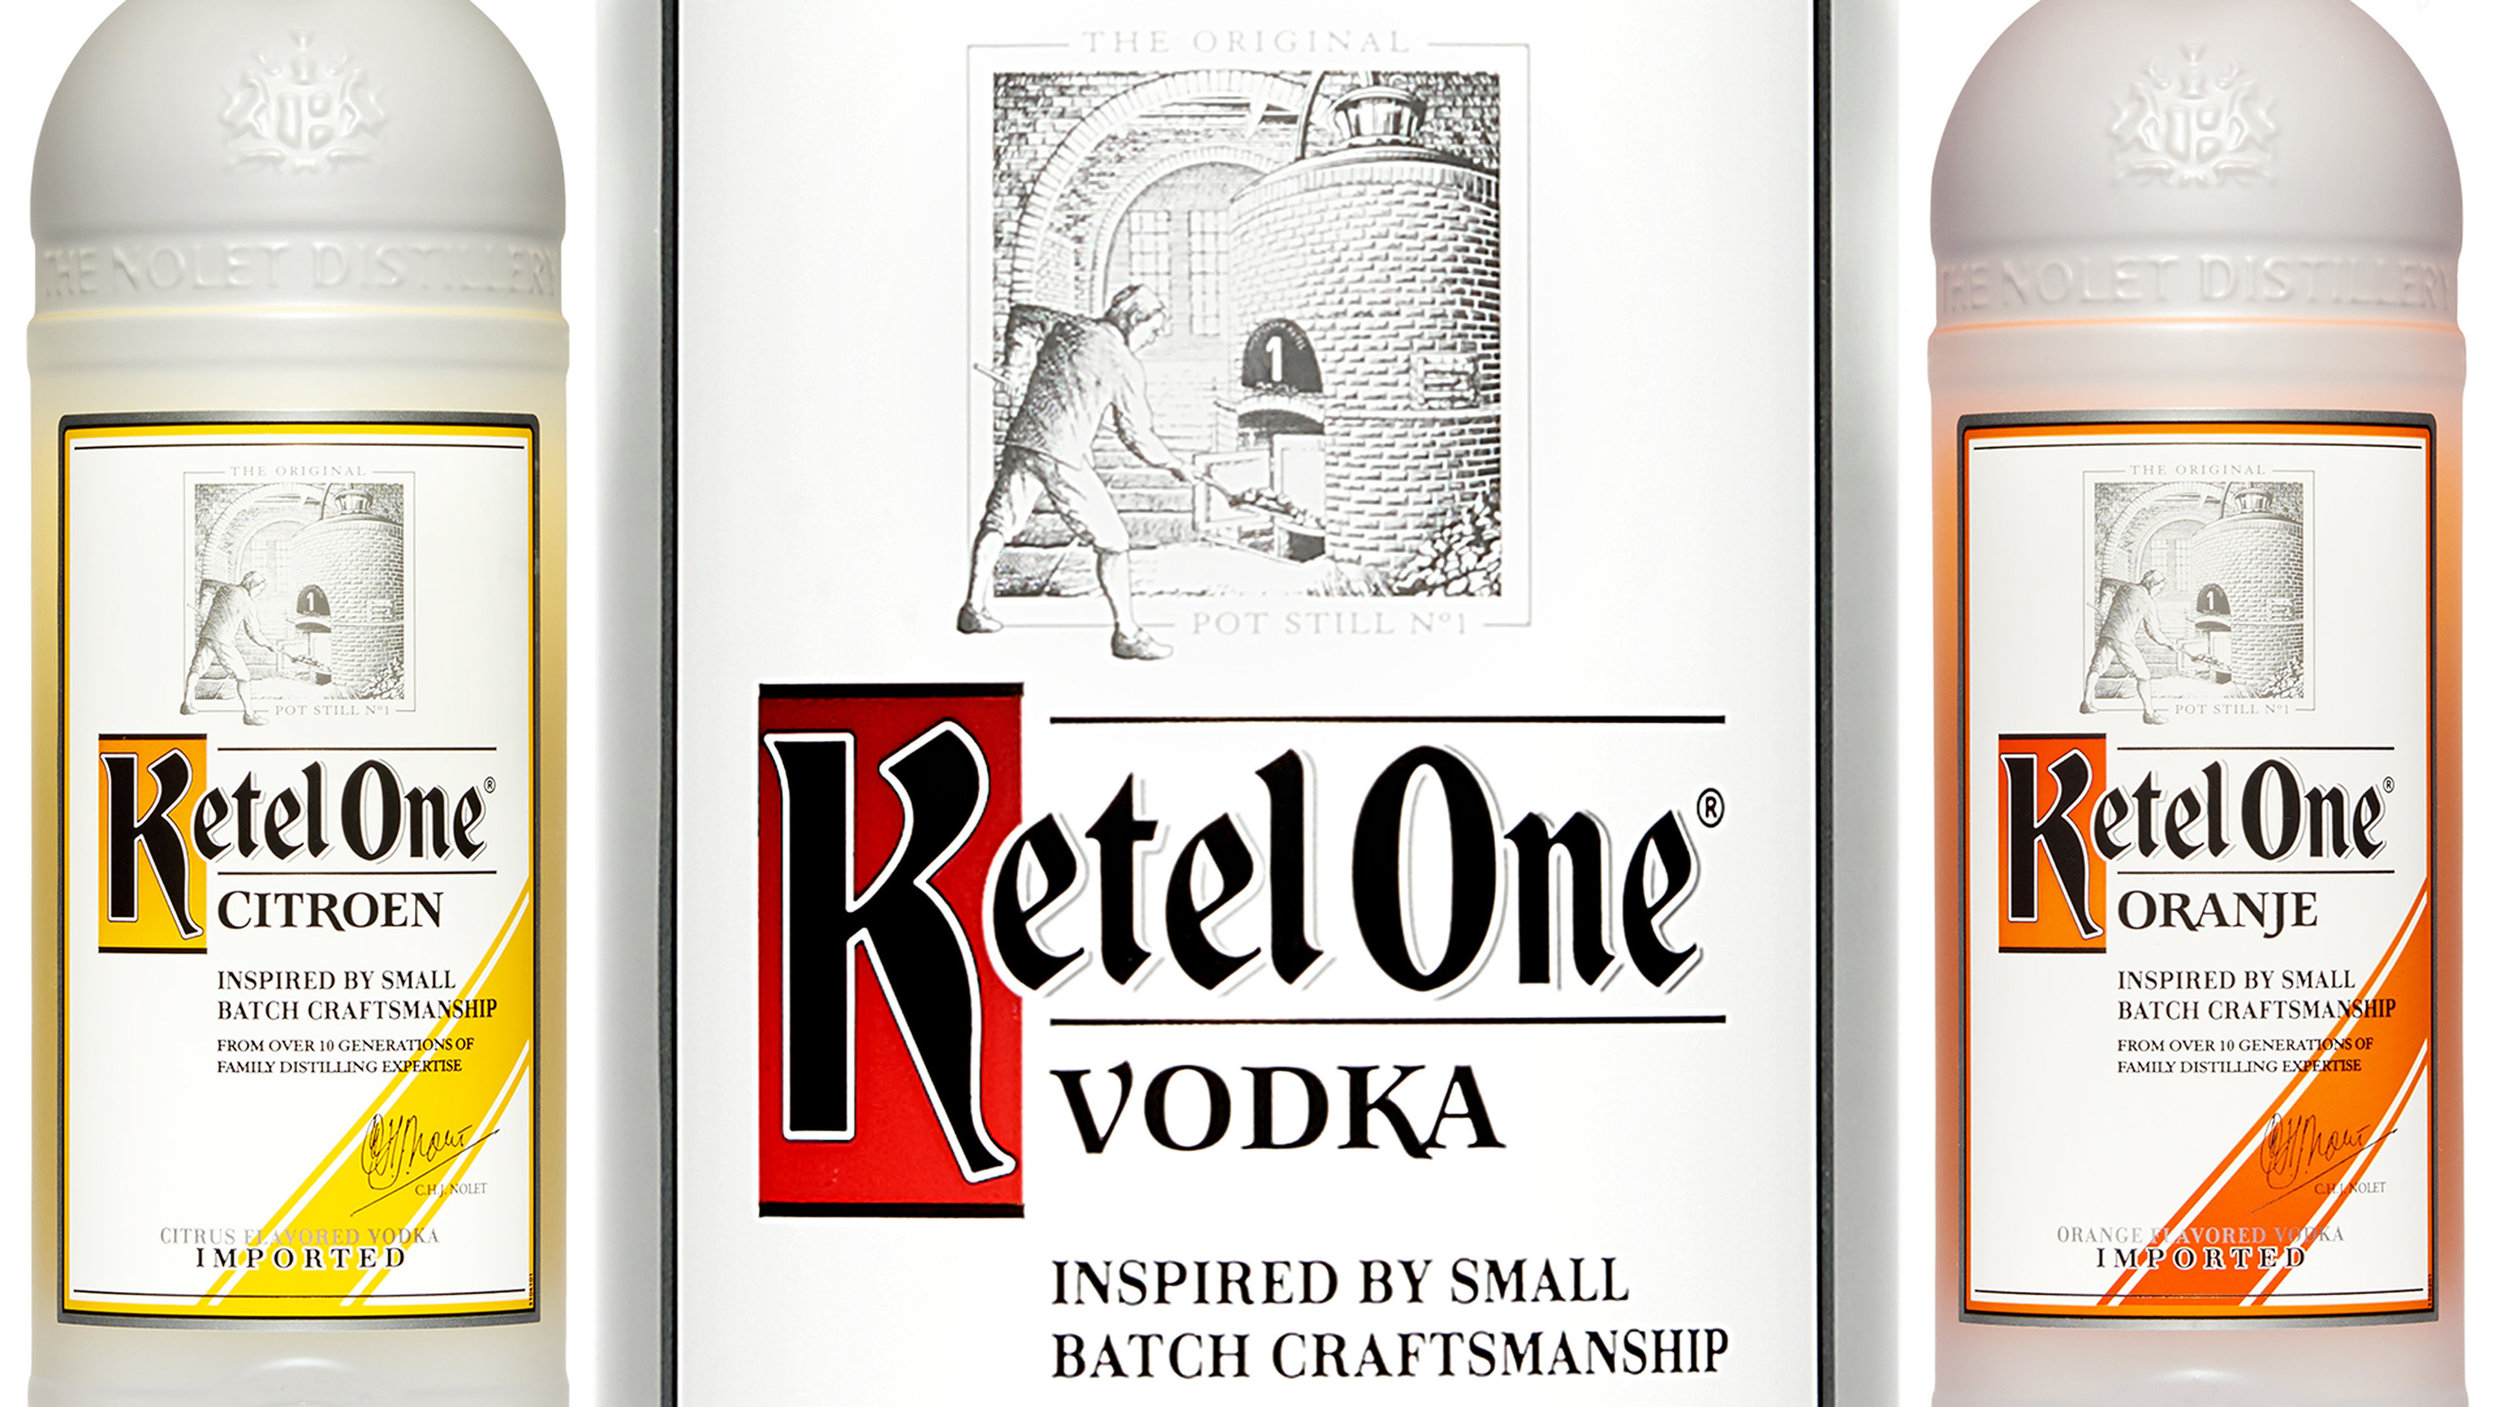 GERTRUDE-INC-Ketel-One-Vodka-Bottles-01.jpg